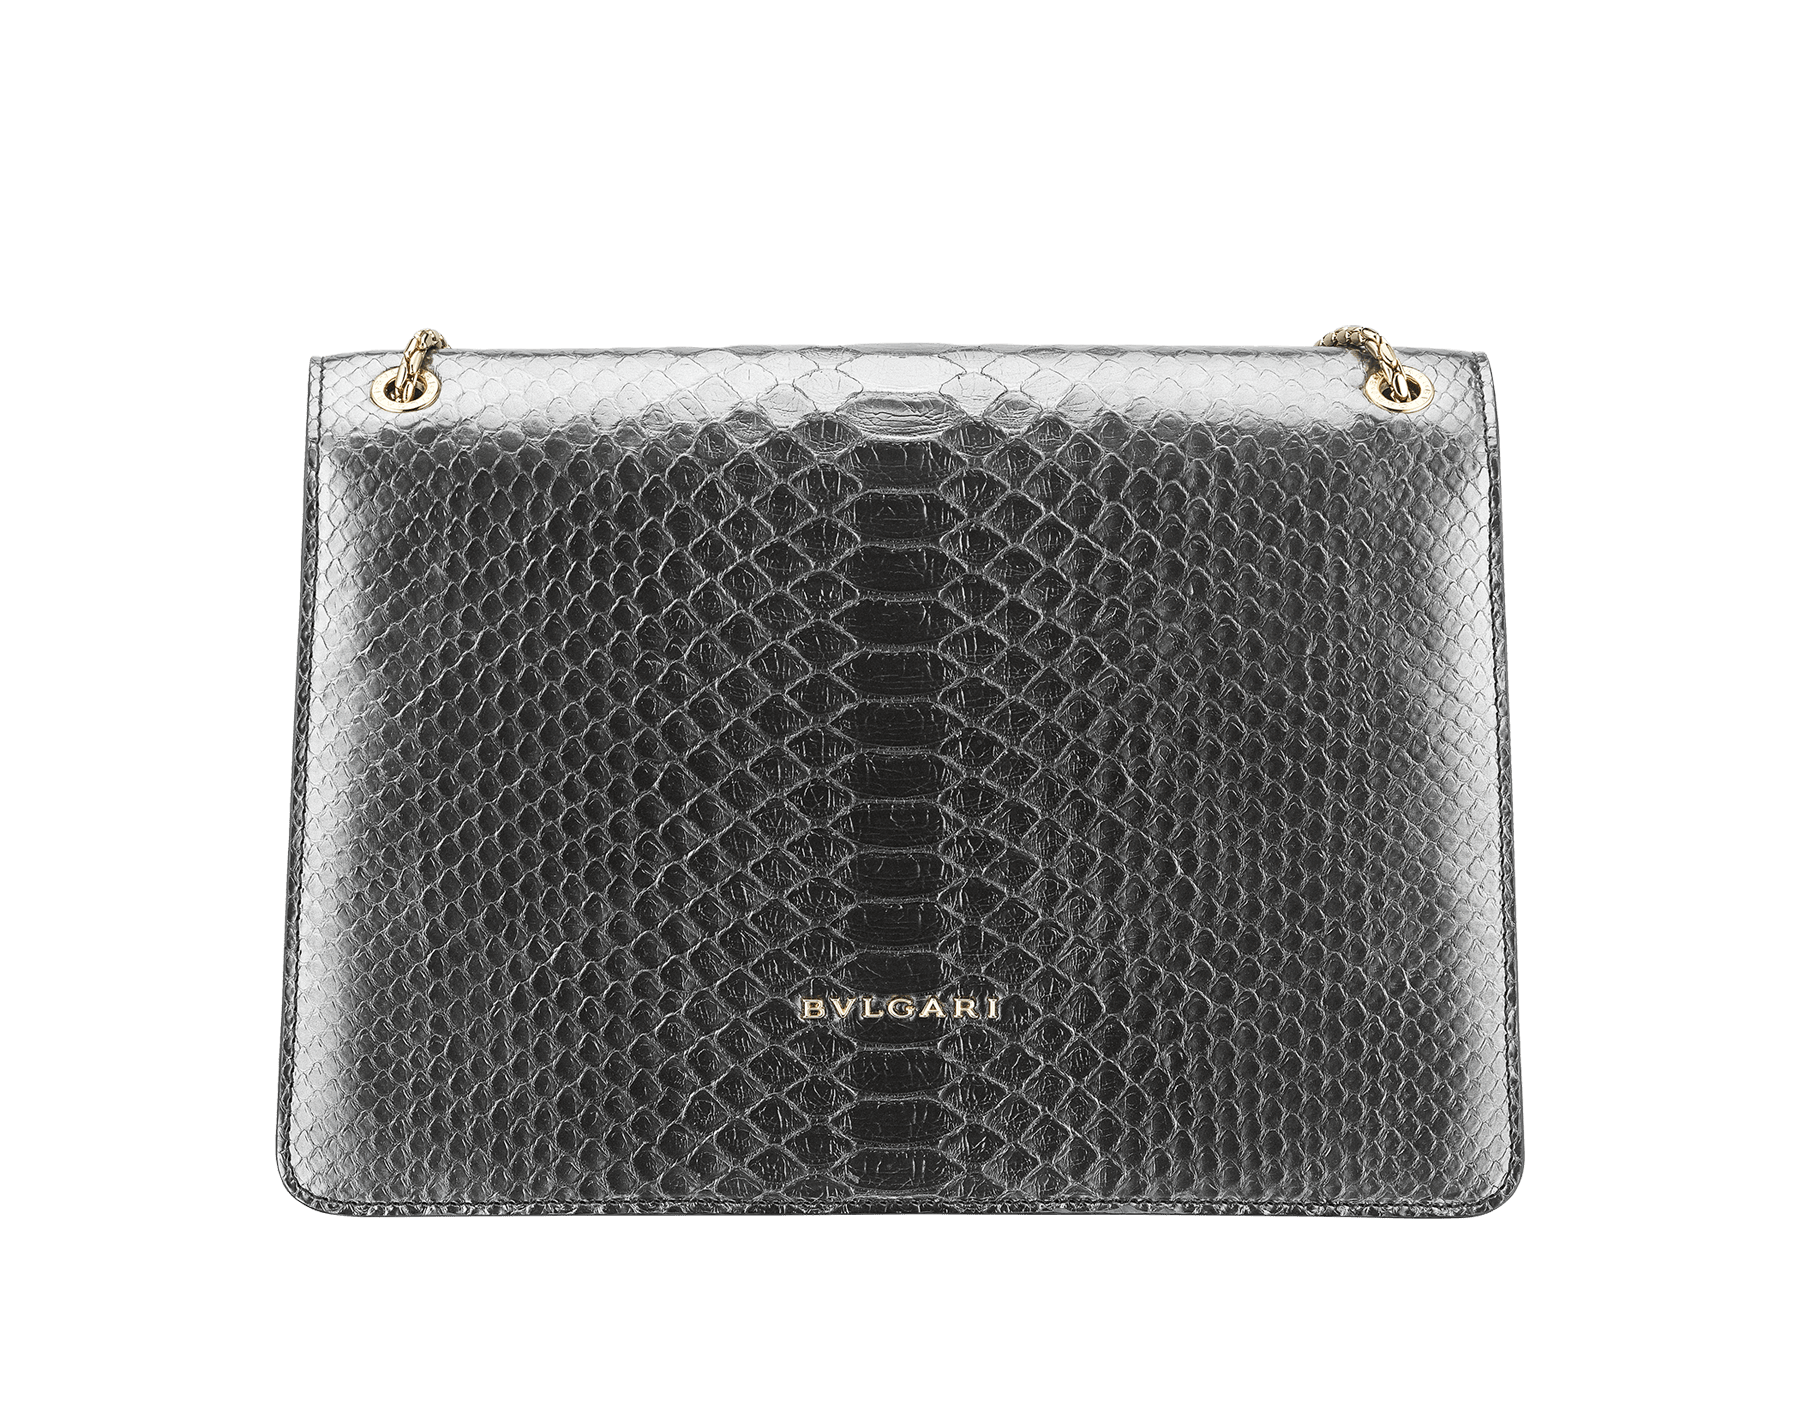 """""""Serpenti Forever"""" shoulder bag black Diamond Glam python skin. Iconic snake head closure in palladium plated brass enriched with black enamel and black onyx eyes. 521-Pc image 3"""